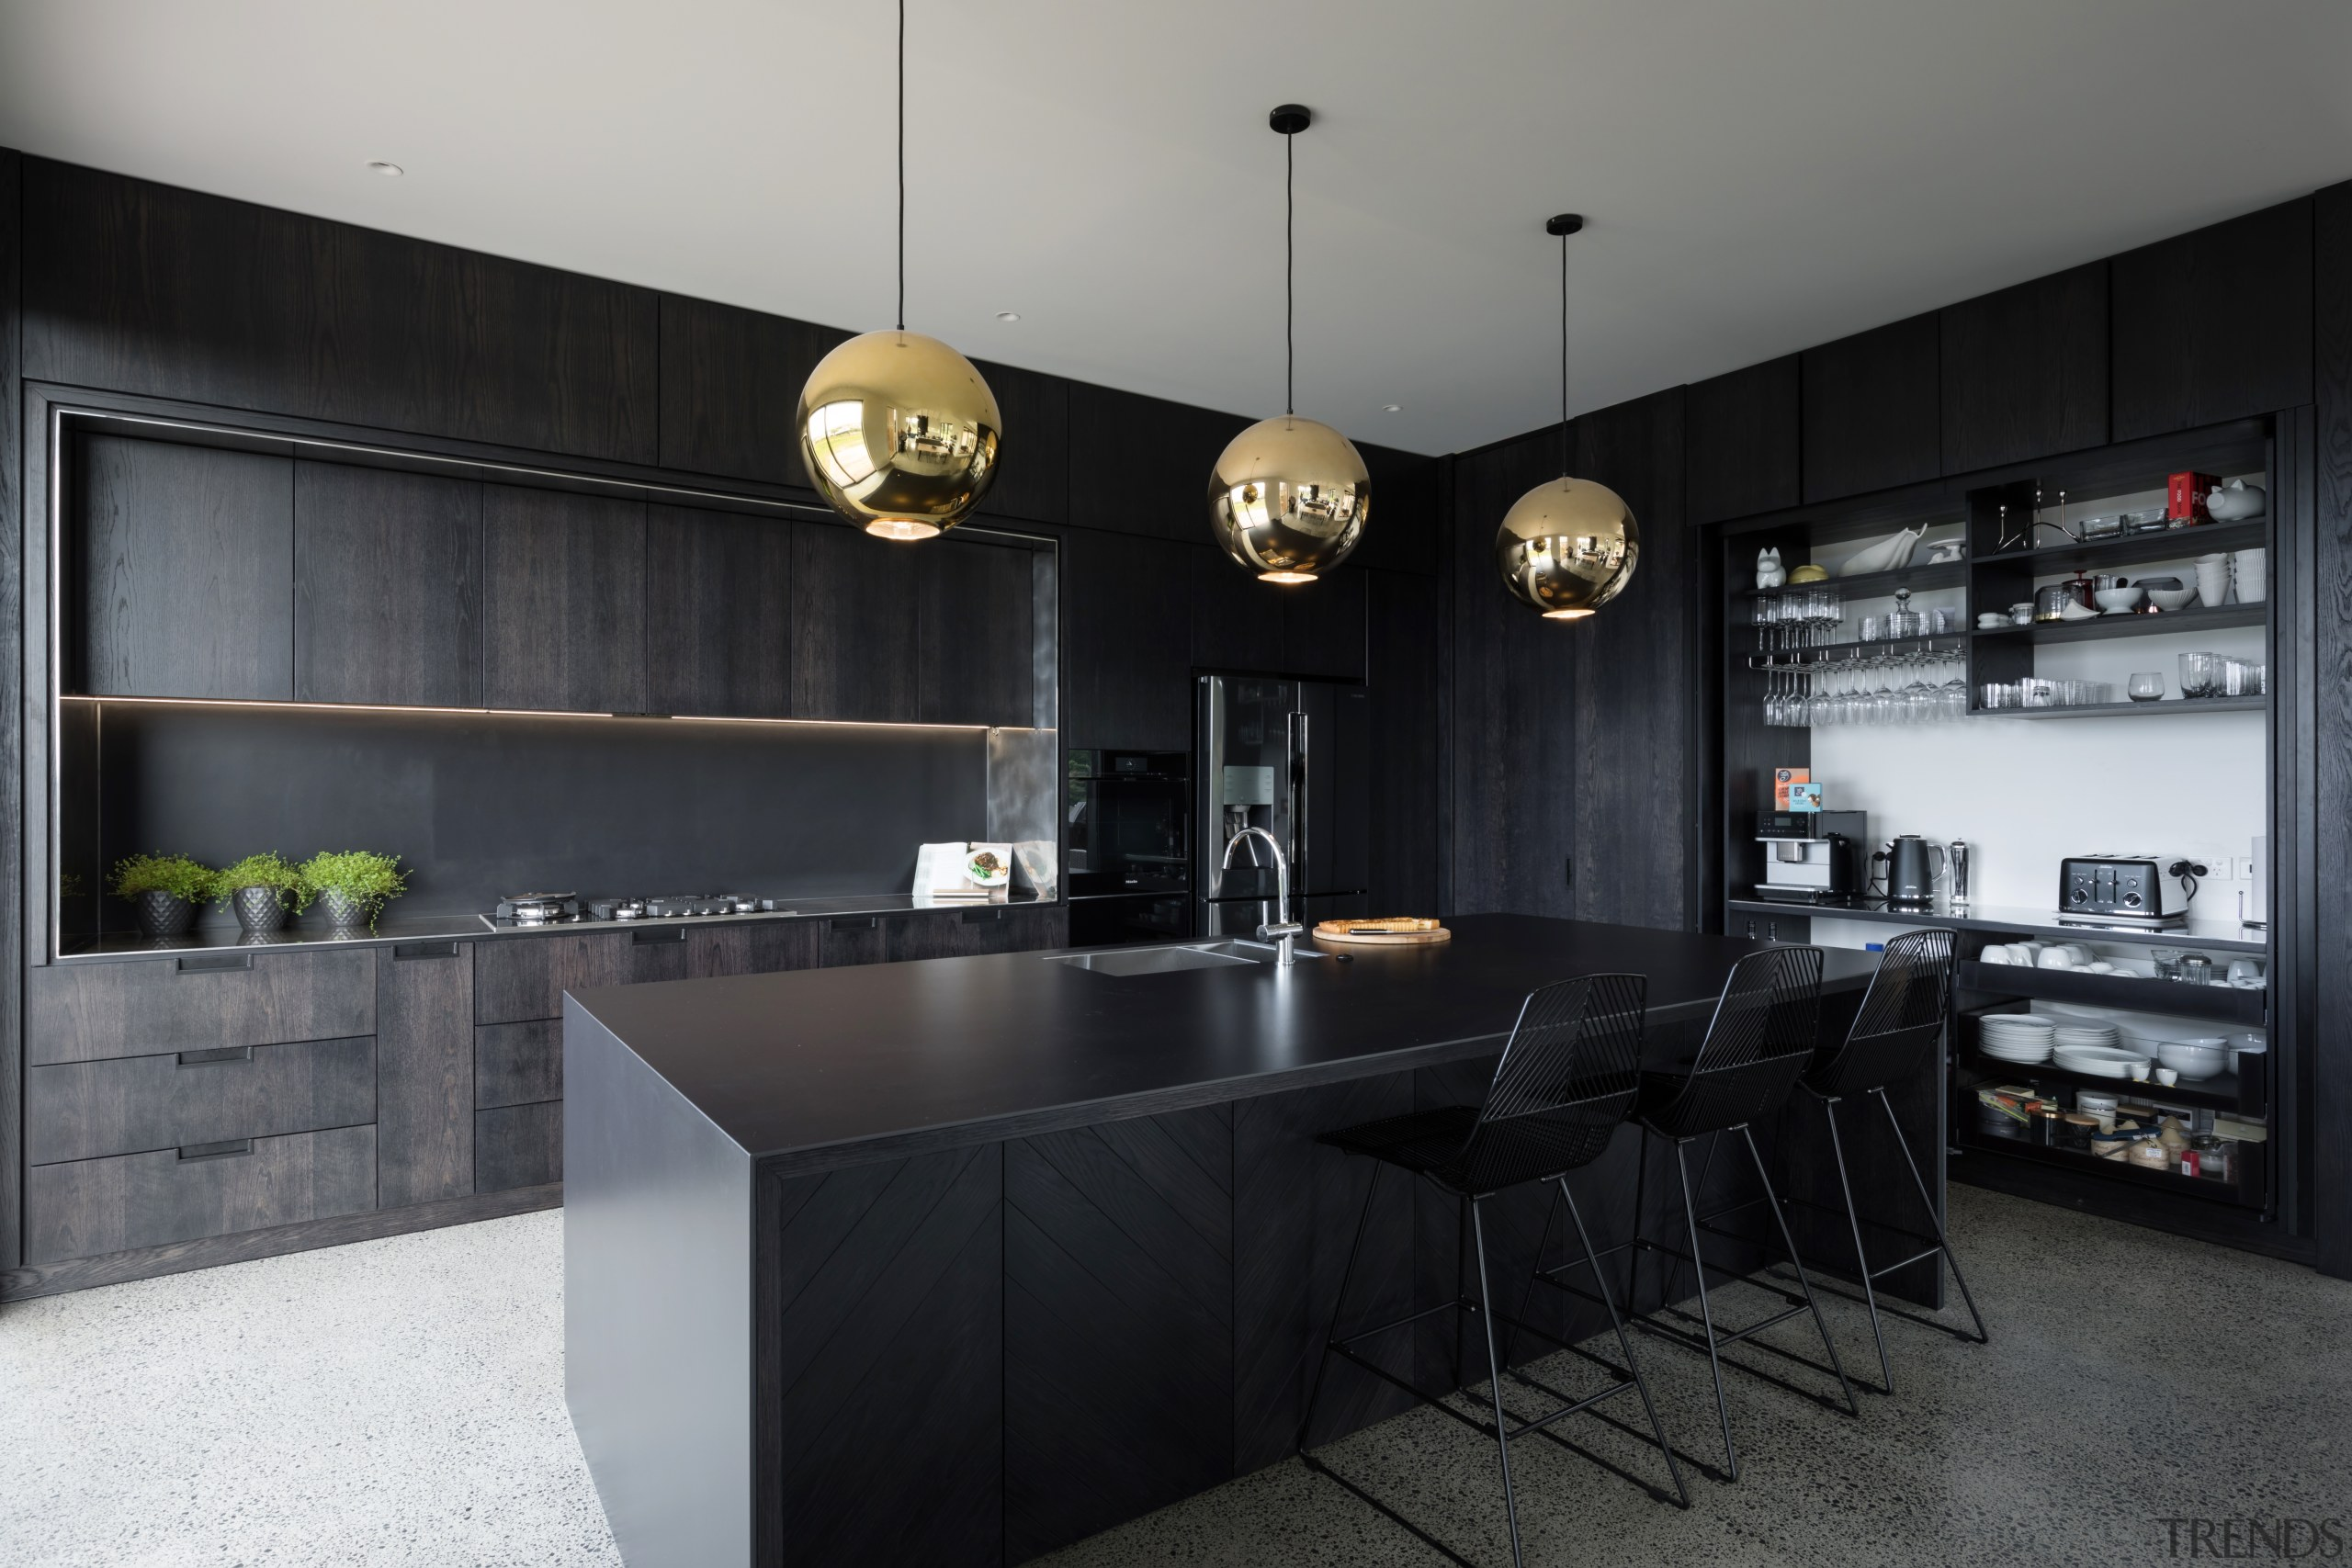 Given the 3m-format-sheeting, the Florim Stone on this countertop, interior design, kitchen, black, gray.Florim Stone, Archant